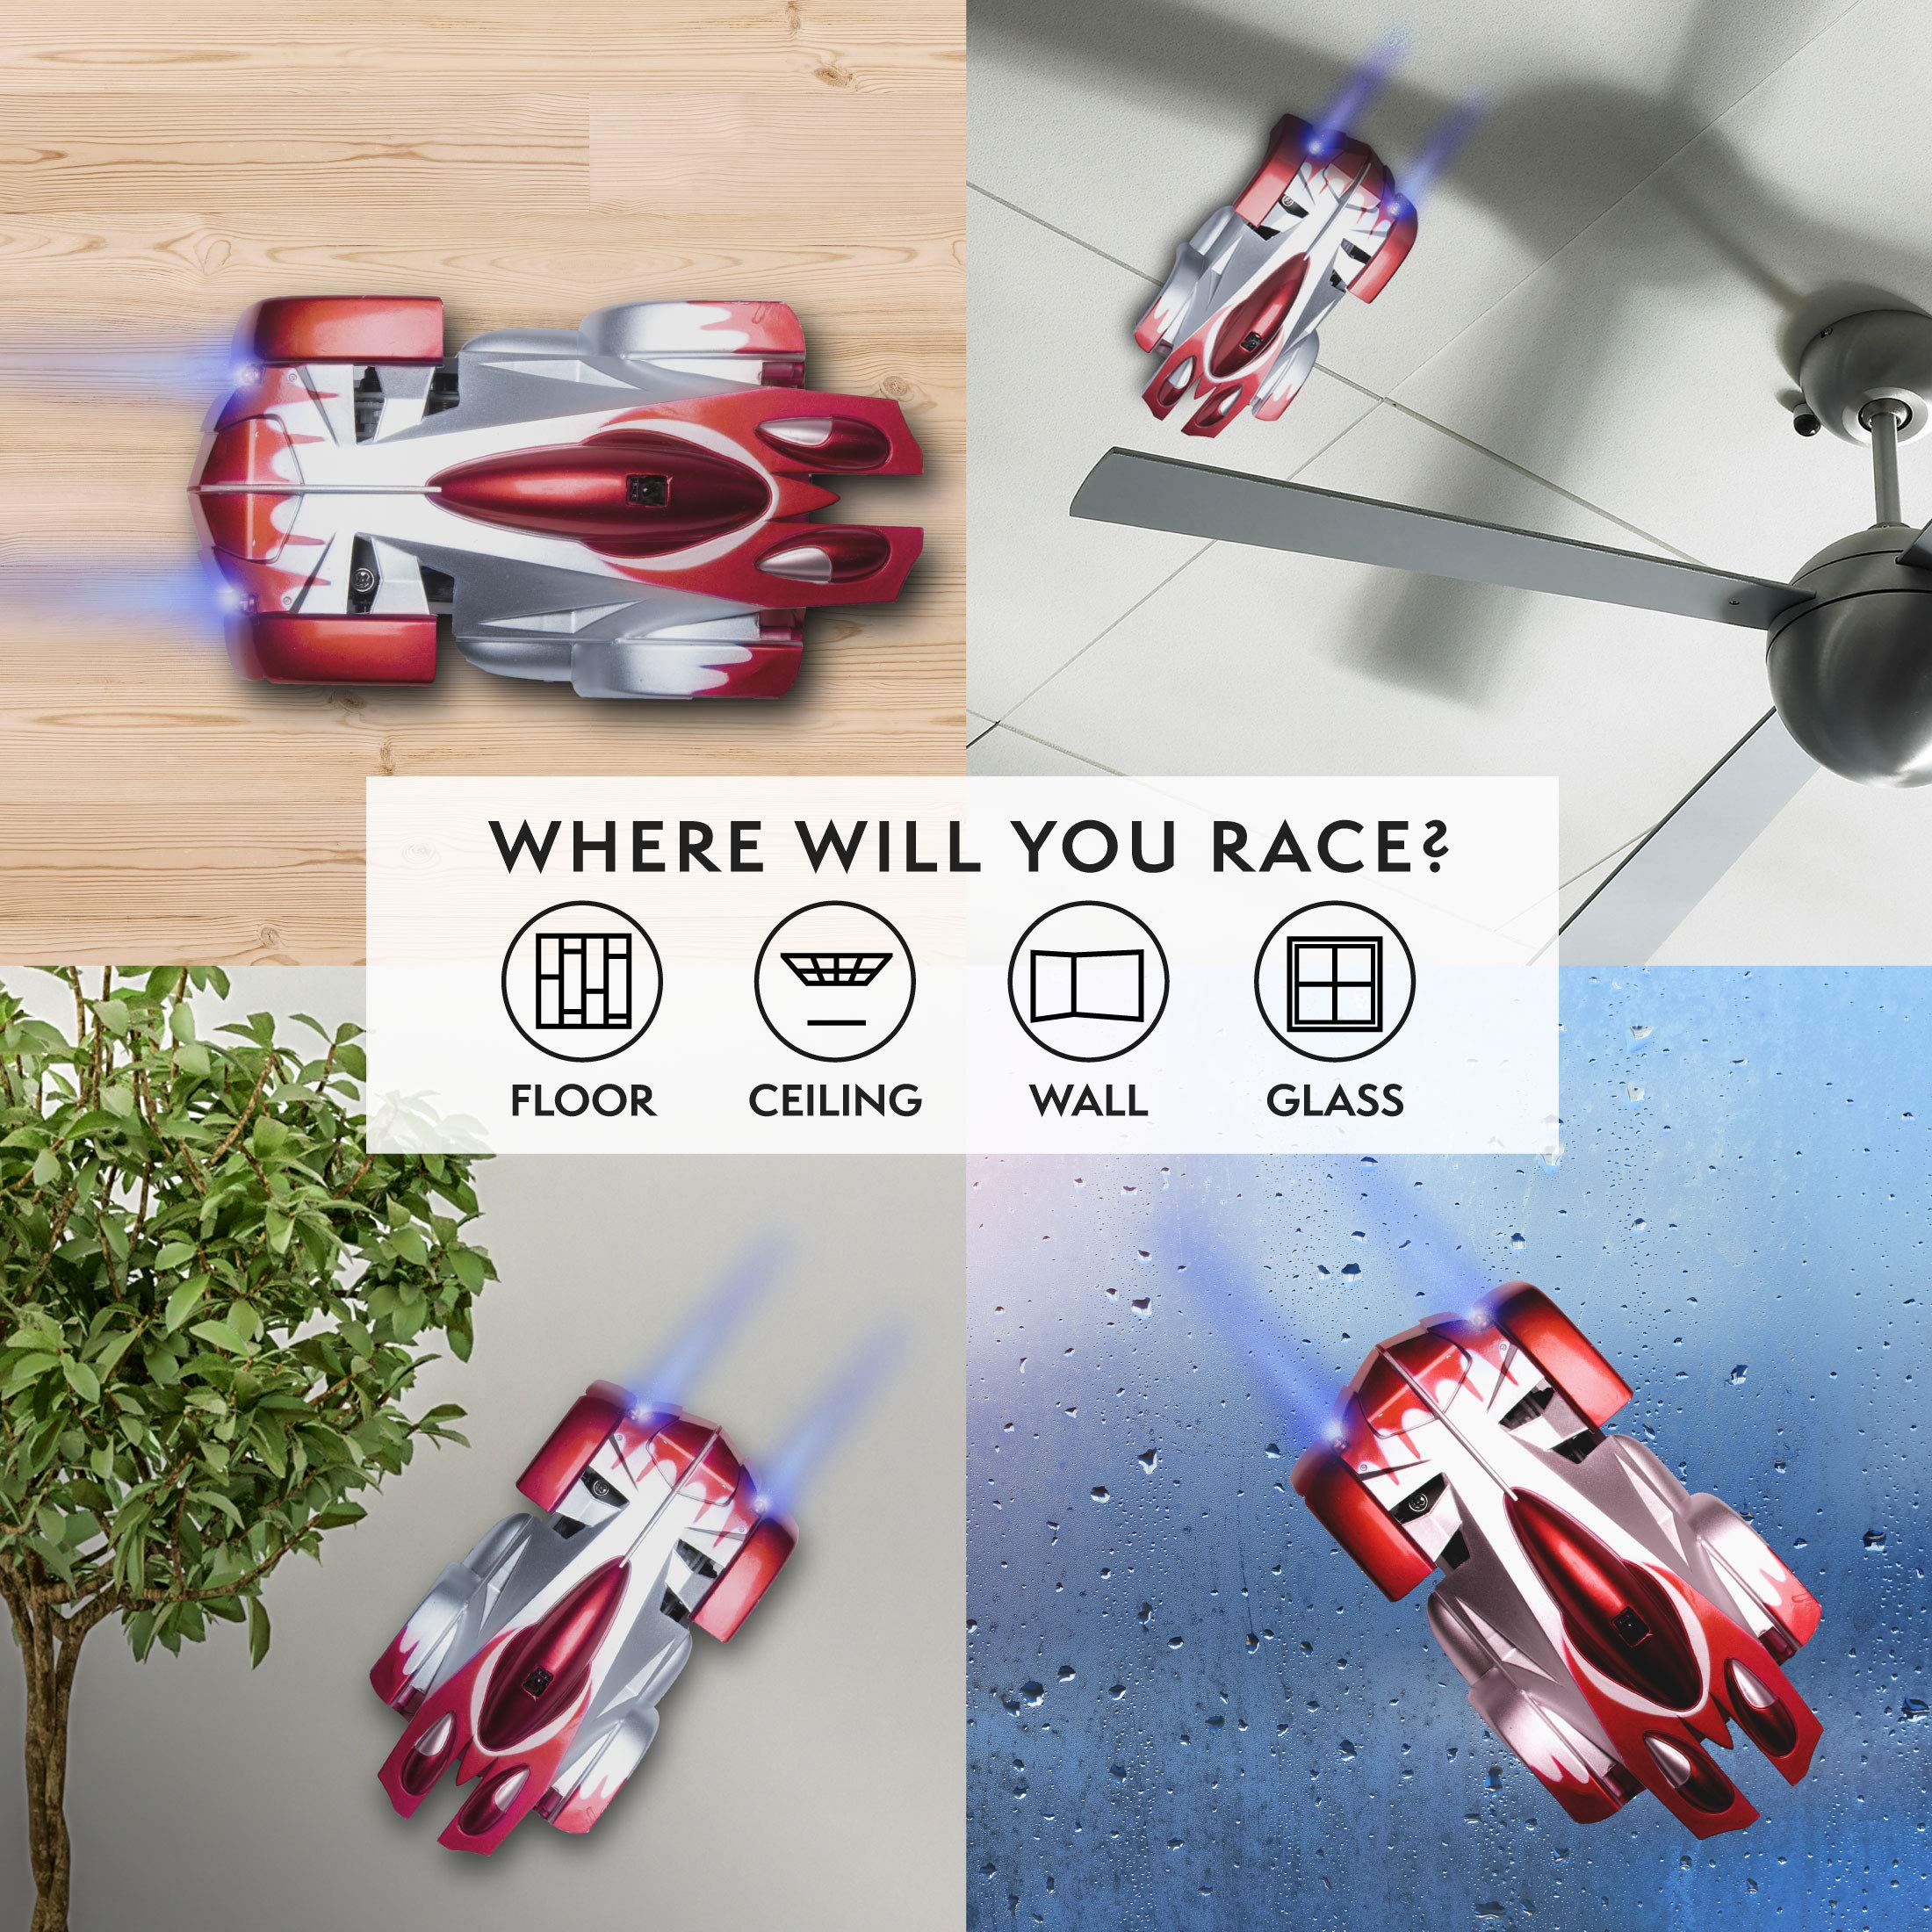 Force1 Remote Control Car Gravity Defying RC Car - RC Cars for Kids and Adults, Race Car Boys Toys for Floor or Wall w/ USB for Rechargeable Fast RC Car (Red) by Force1 (Image #2)